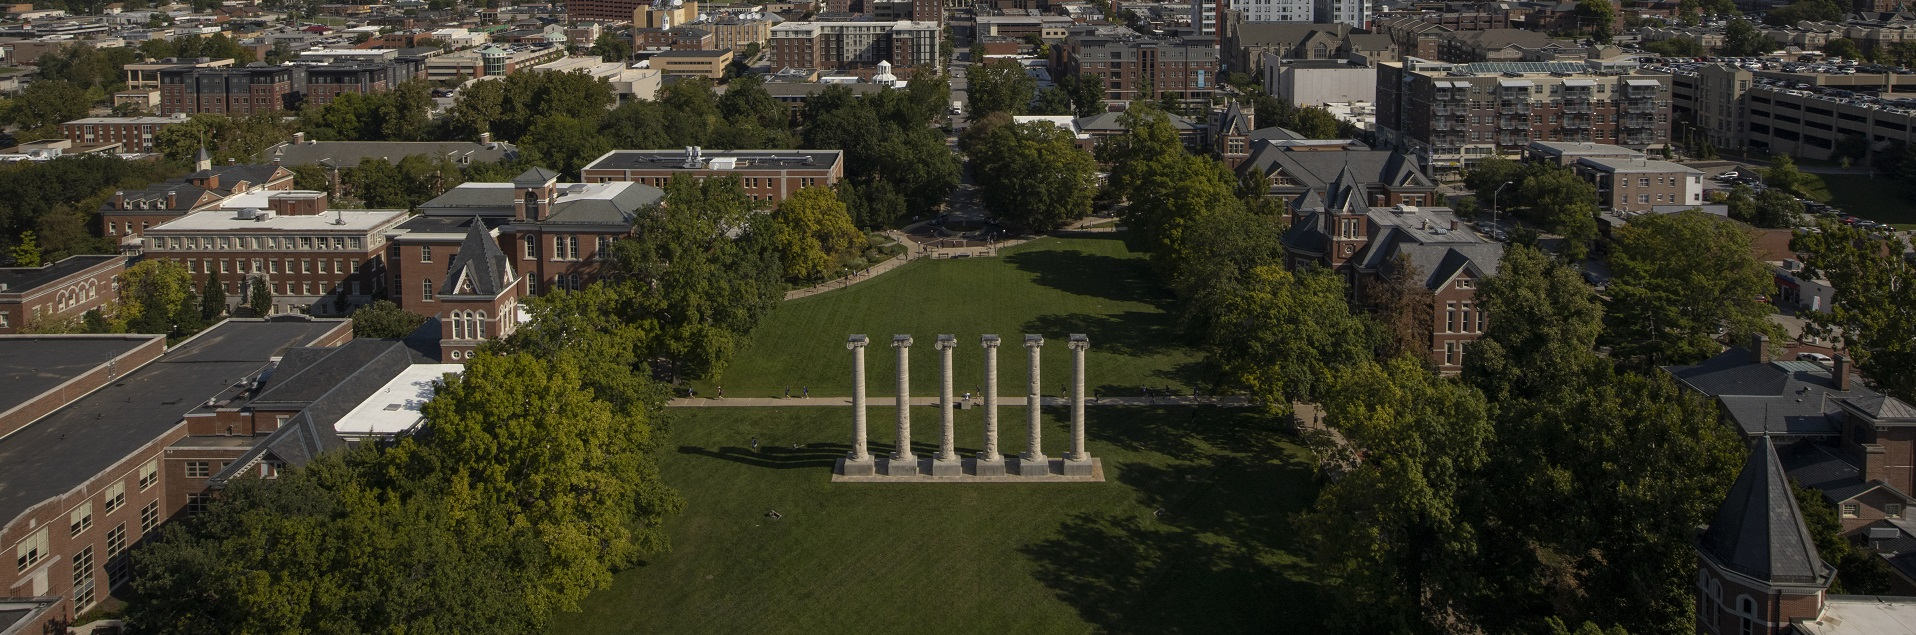 View of the University of Missouri campus atop Jesse Hall